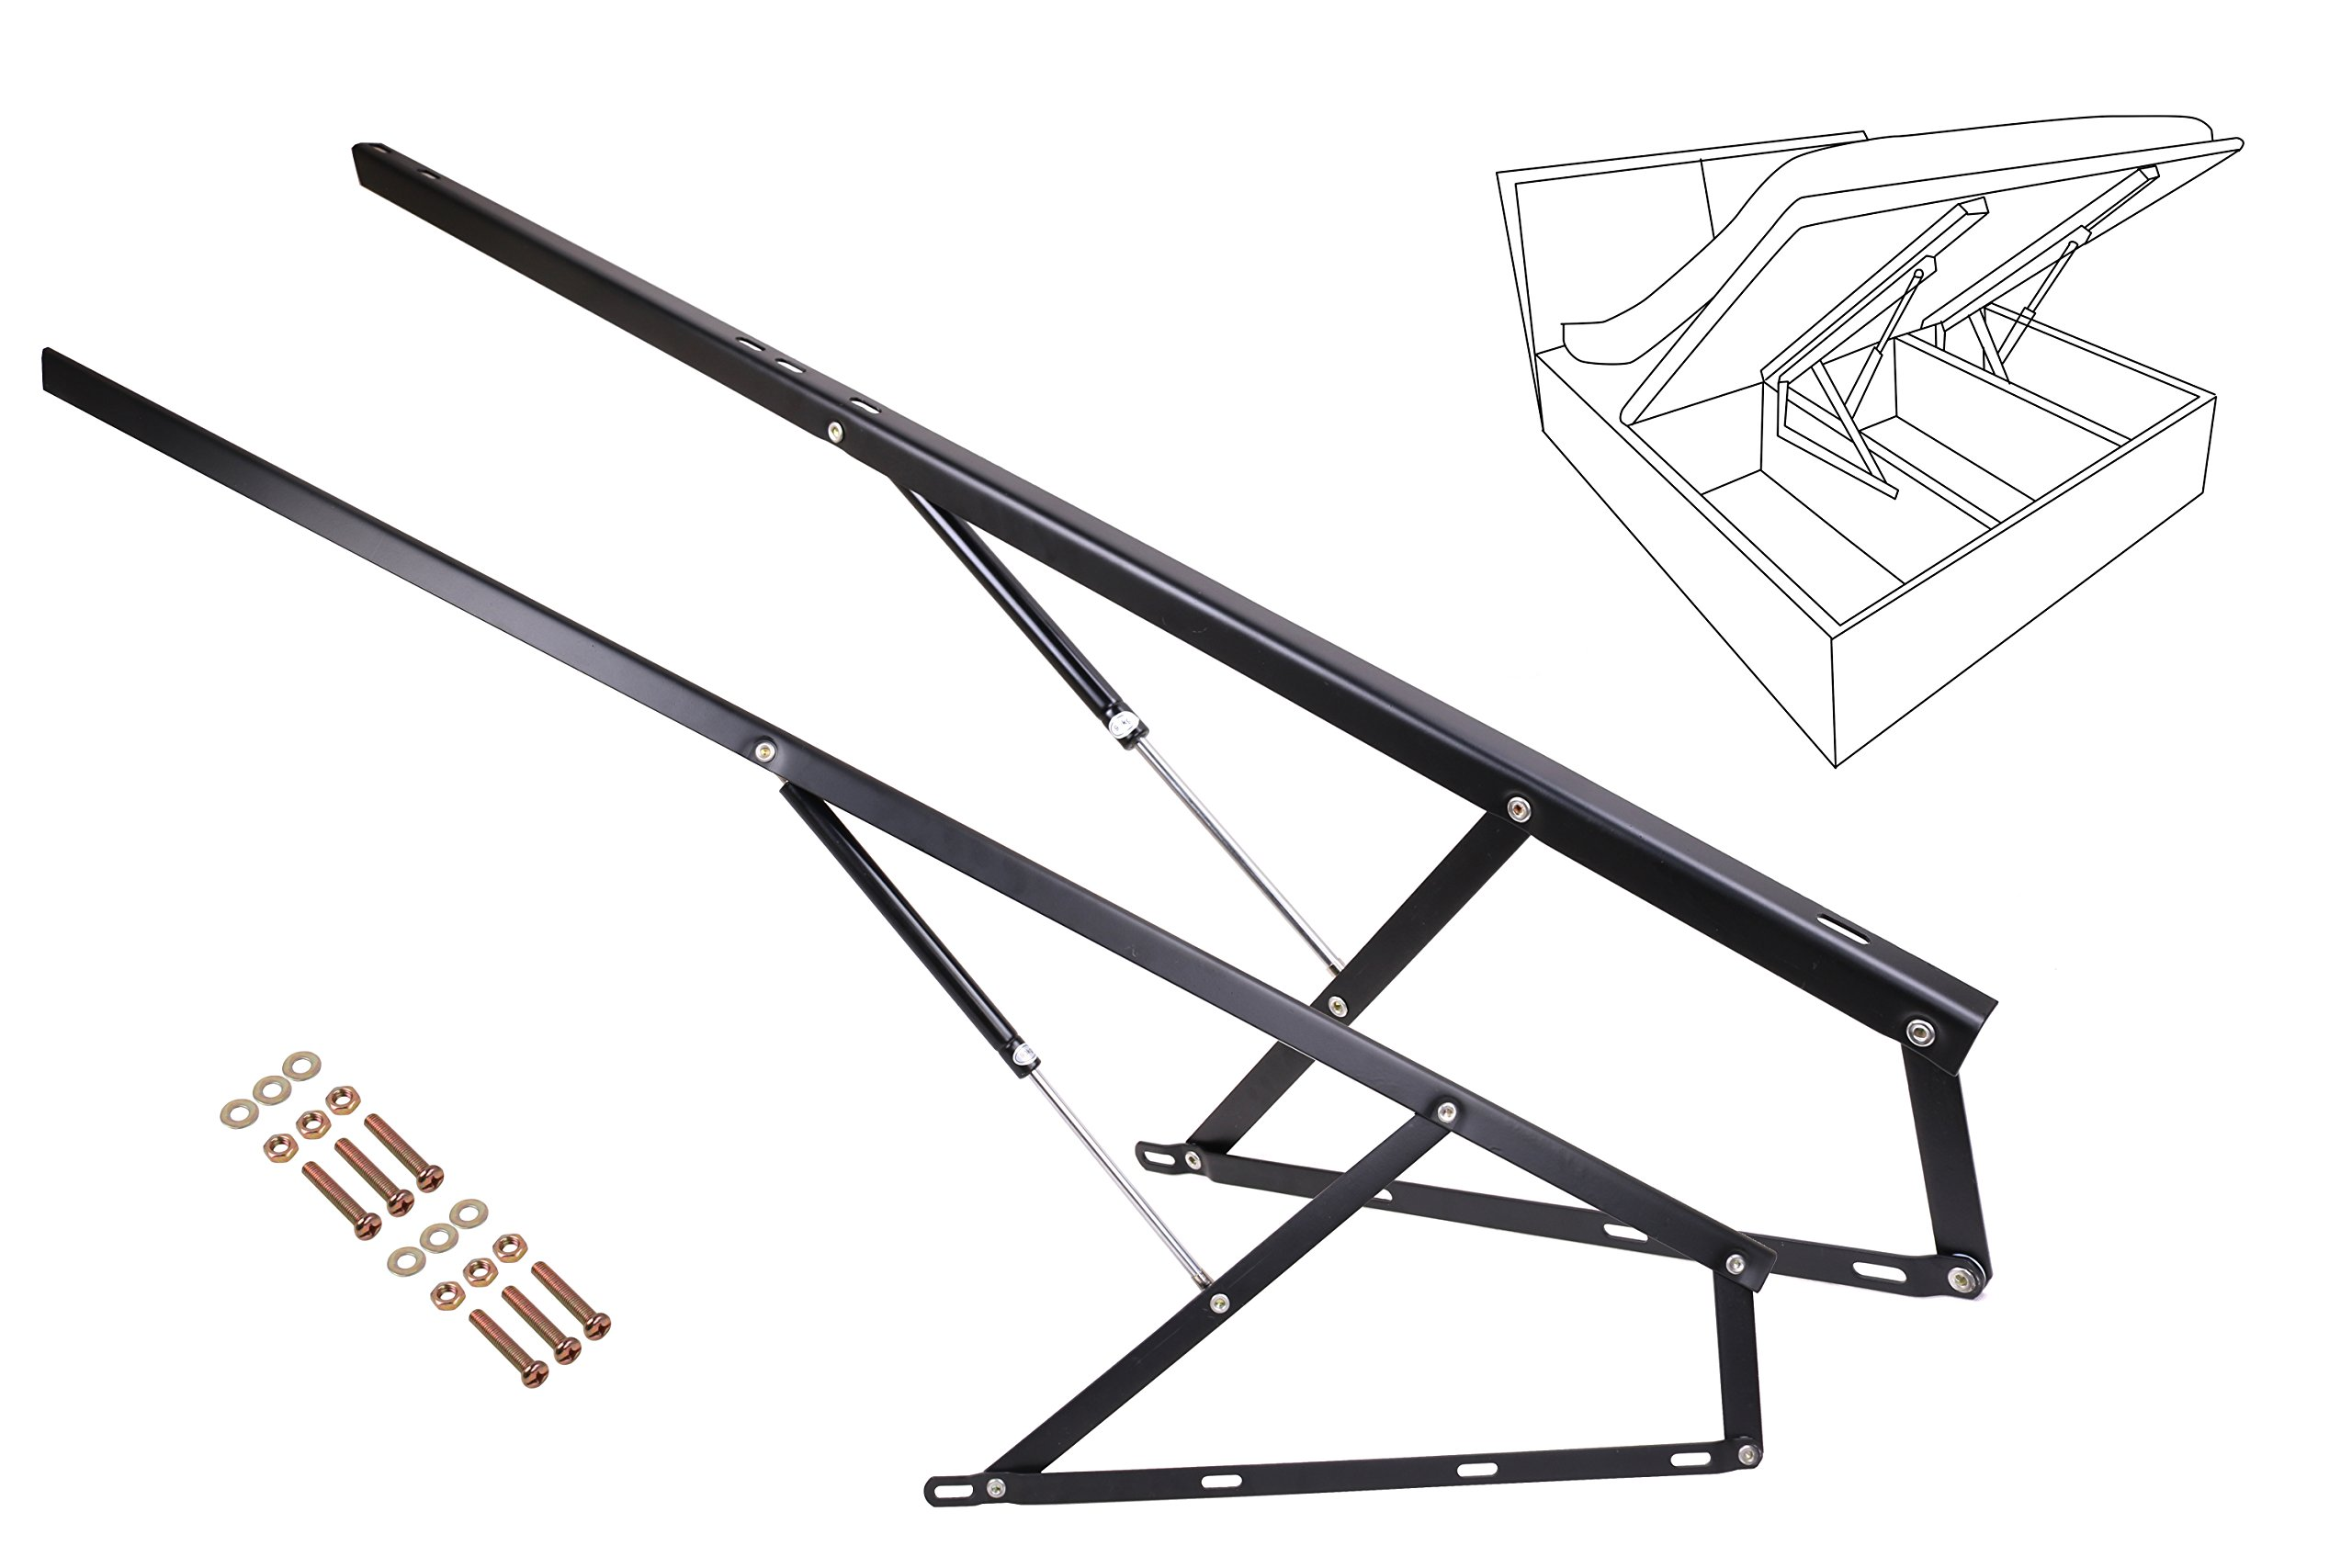 5FT Hydraulic Bed Lift Mechanisms for Sofa Bed Box Storage King Queen Twin Space Saving DIY Project Hardware,Black